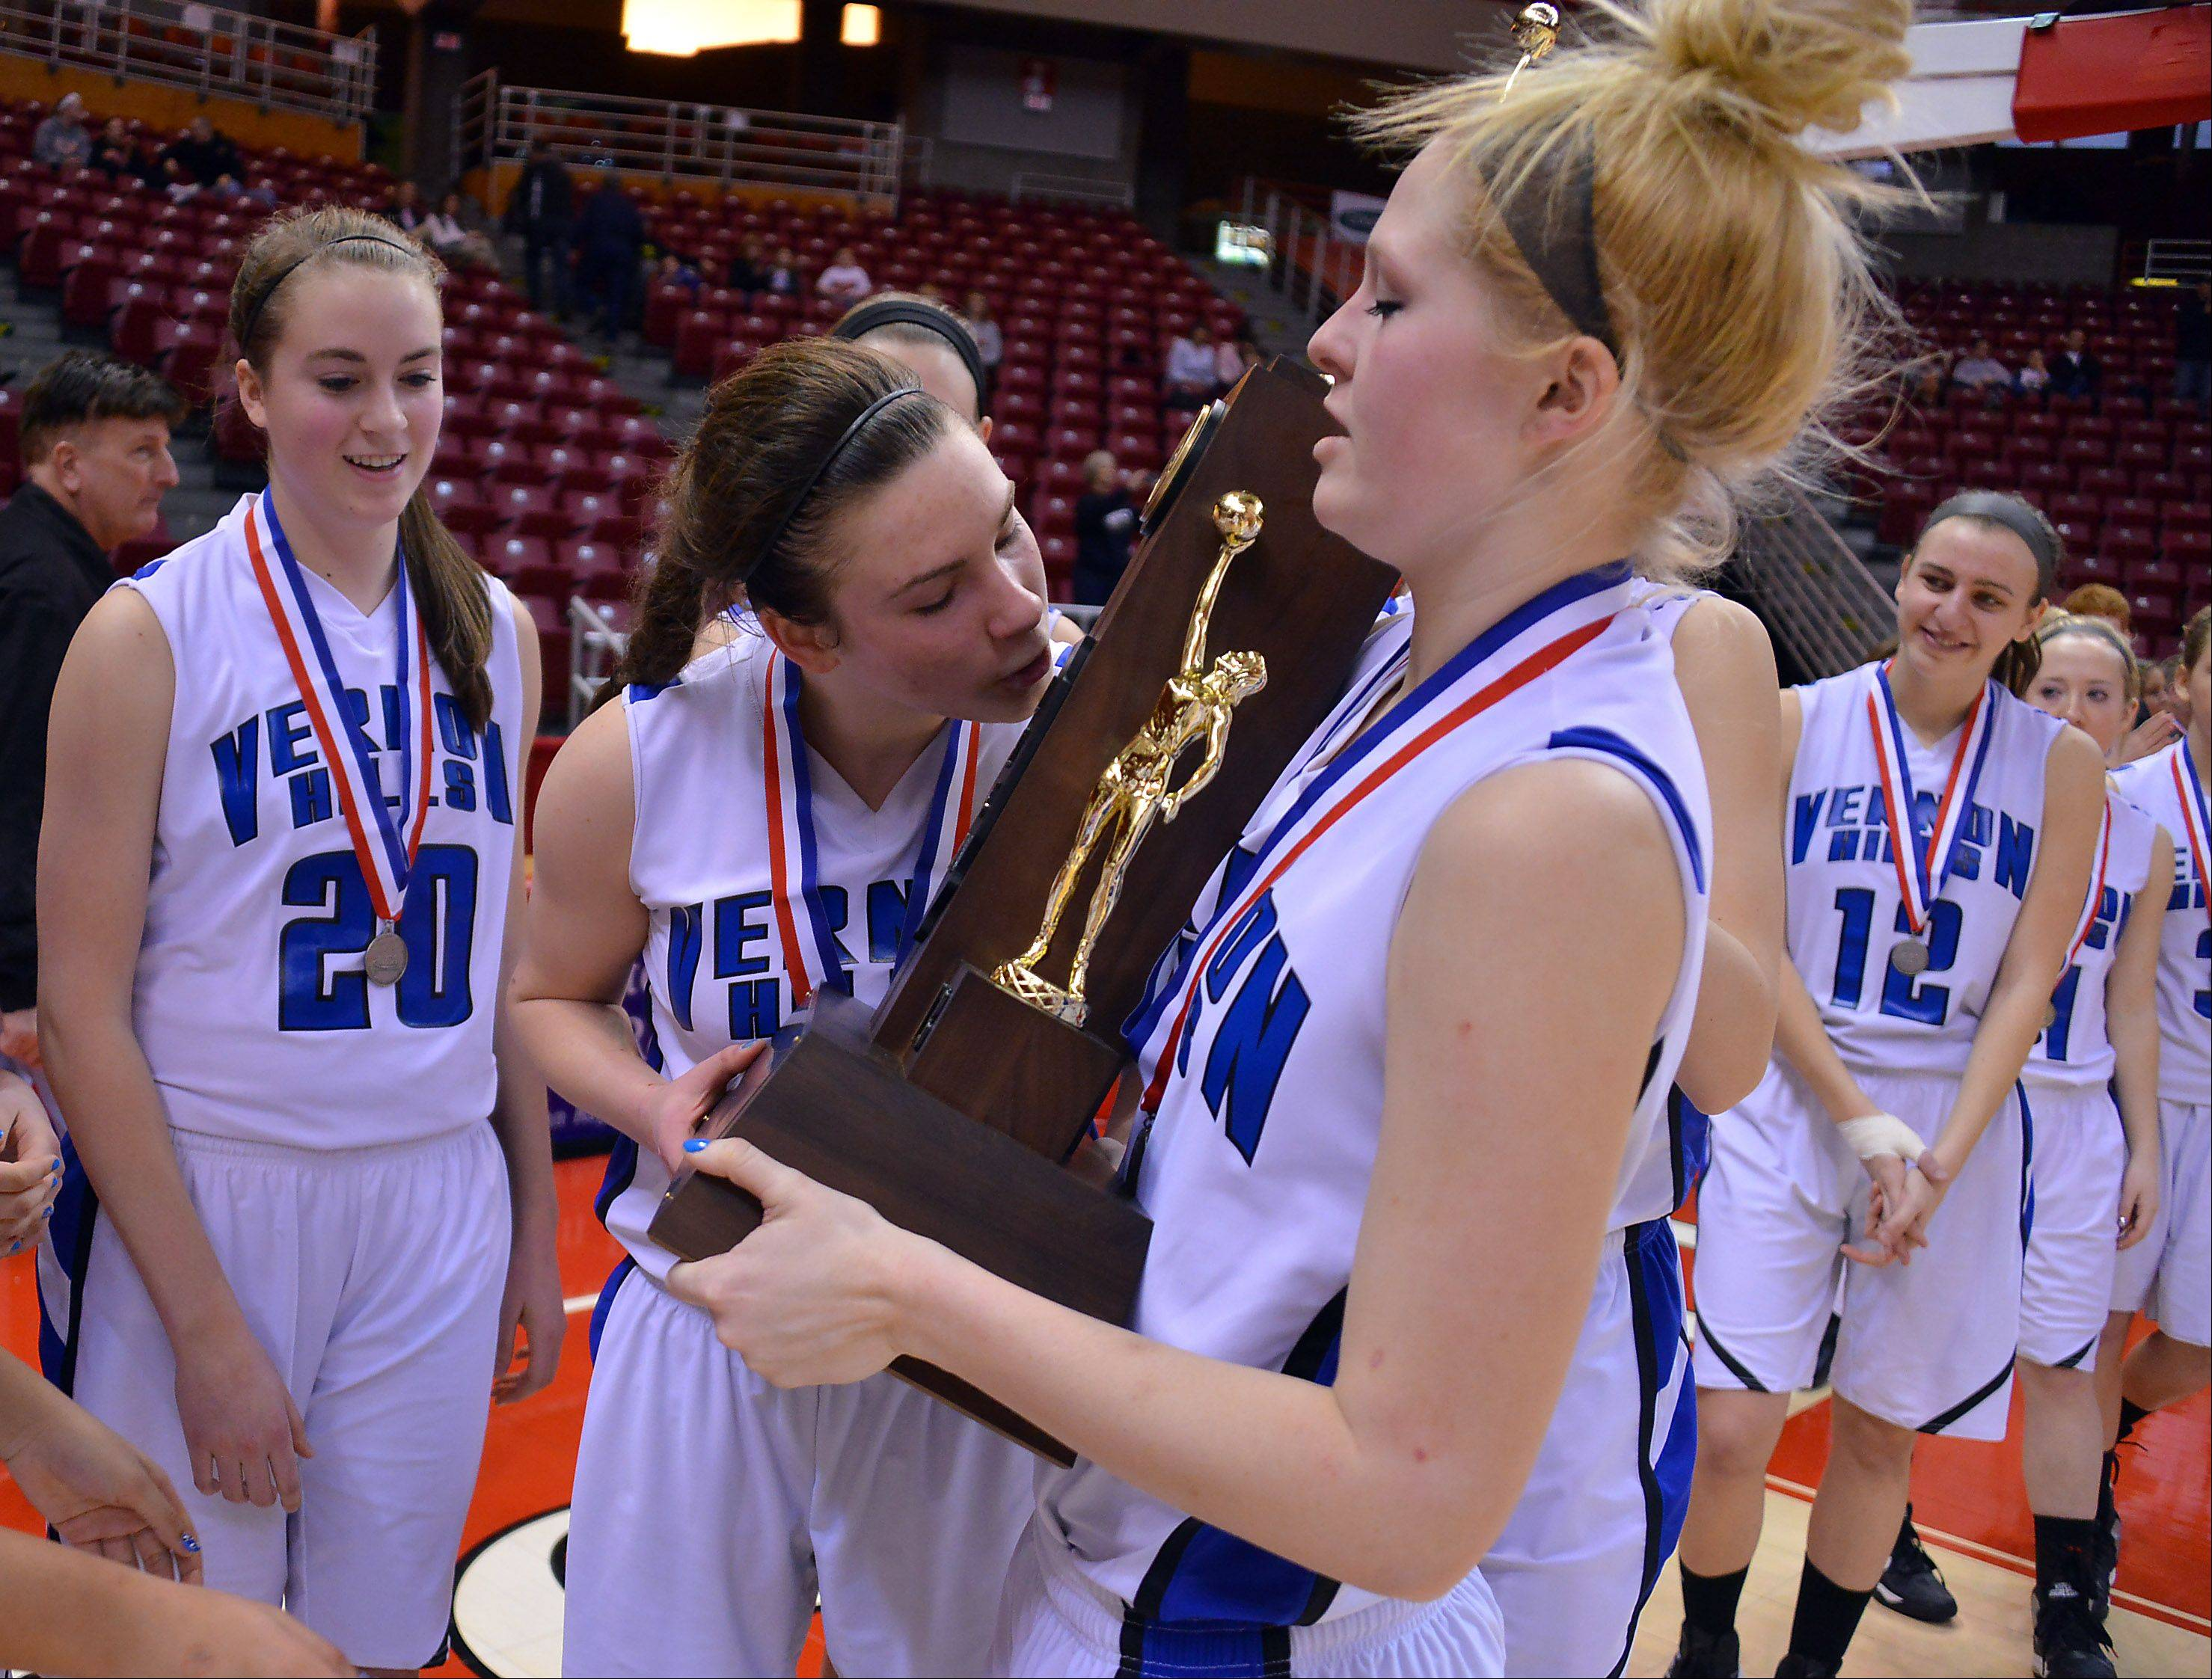 Quincy Notre Dame denies Vernon Hills state title